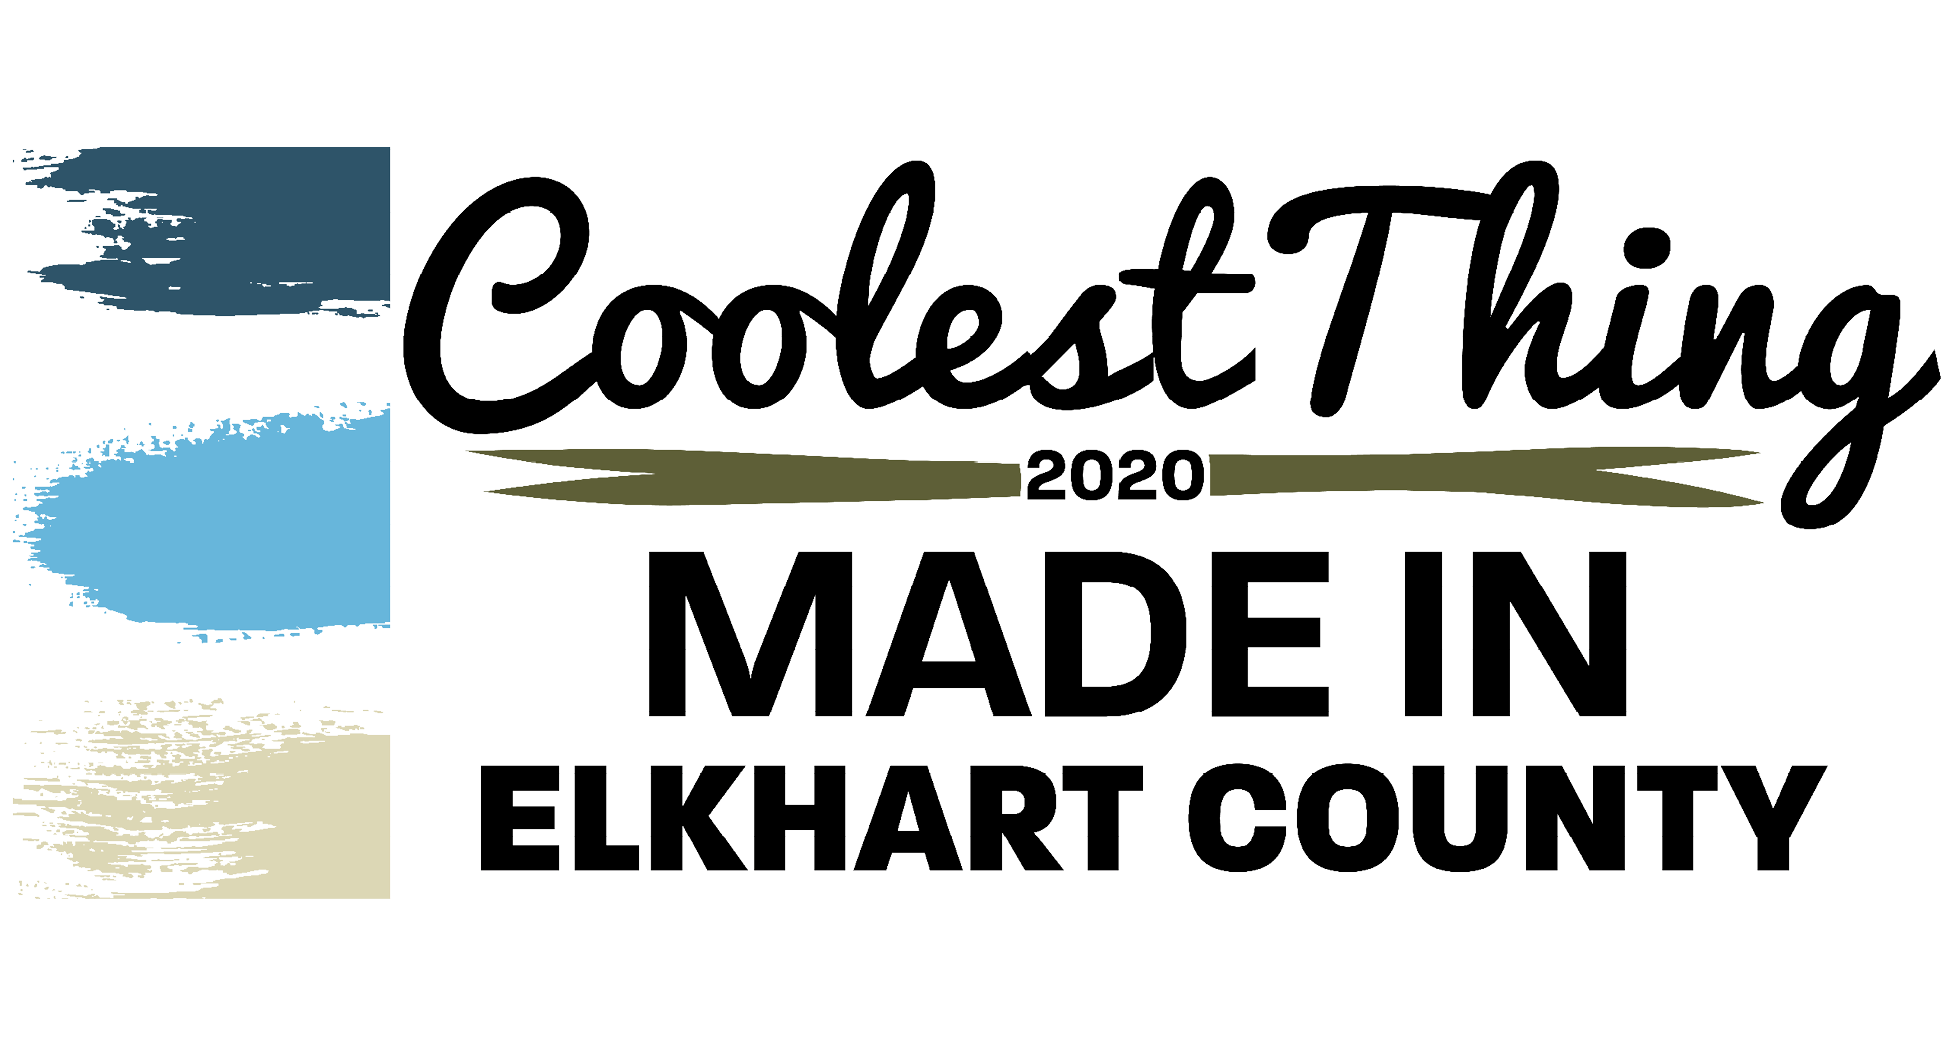 Search is on for the Coolest Thing Made in Elkhart County